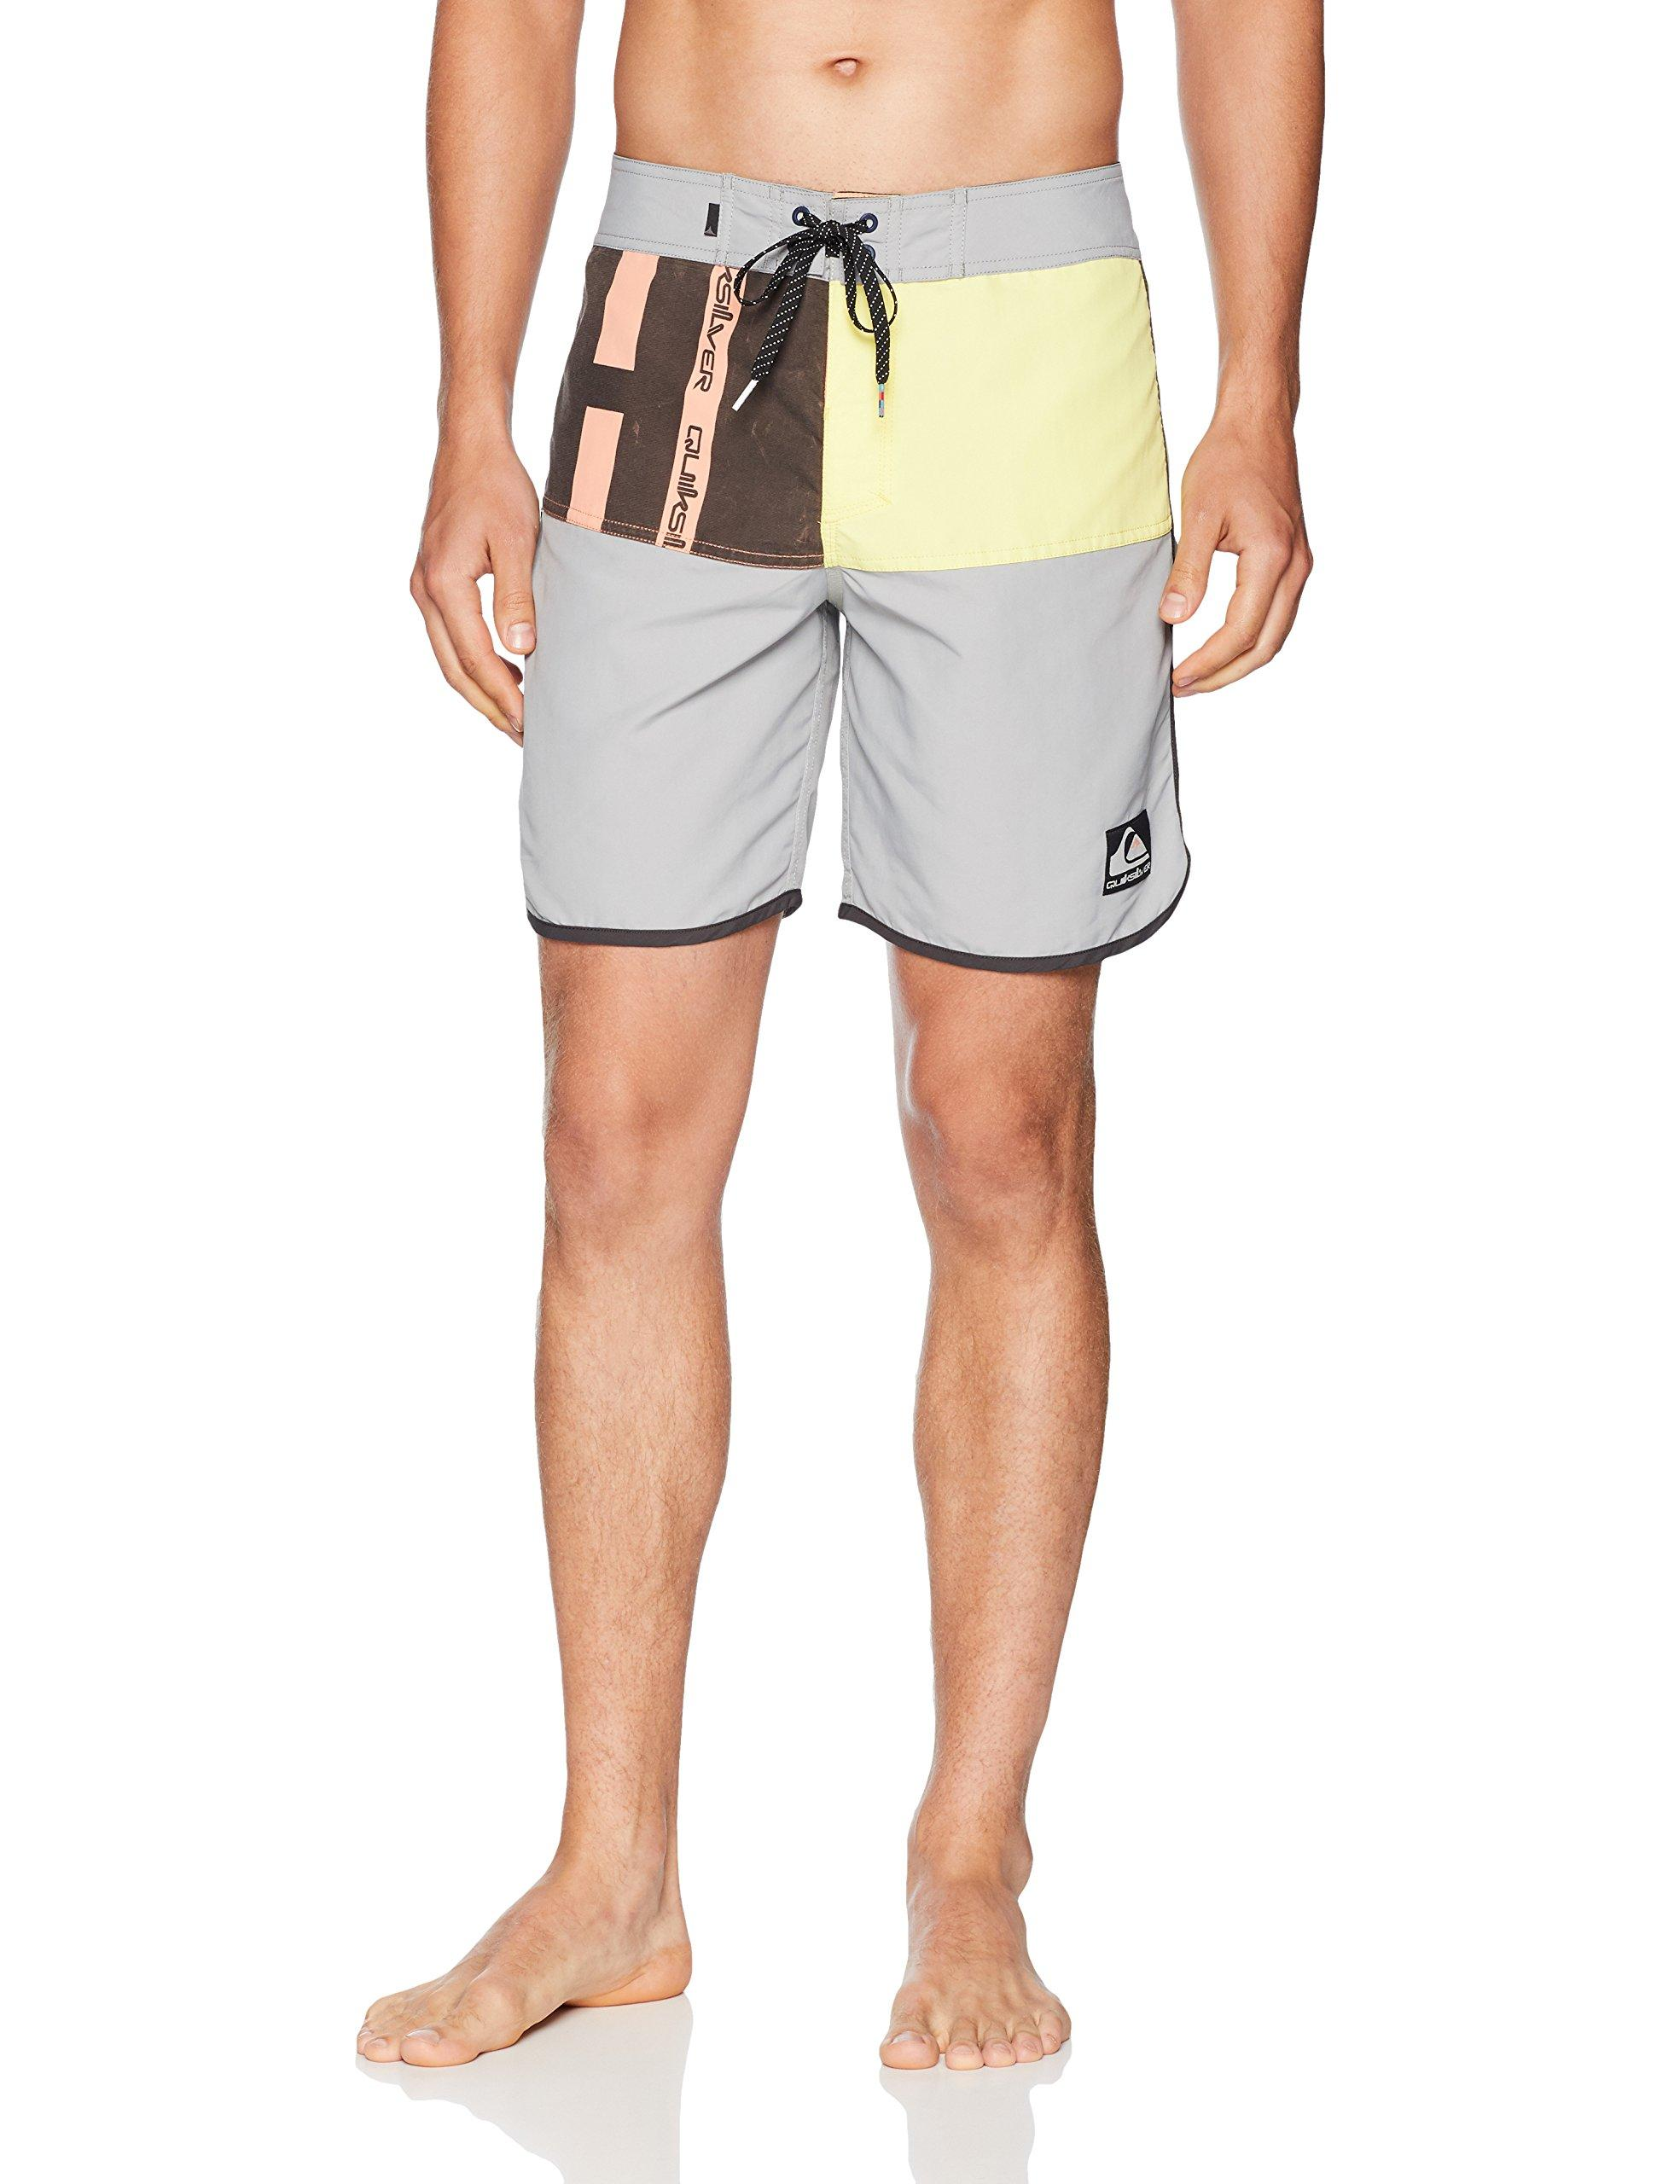 Mens Swim Trunks Bamboo Trees Sun and Mountains Quick Dry Beach Board Shorts with Mesh Lining